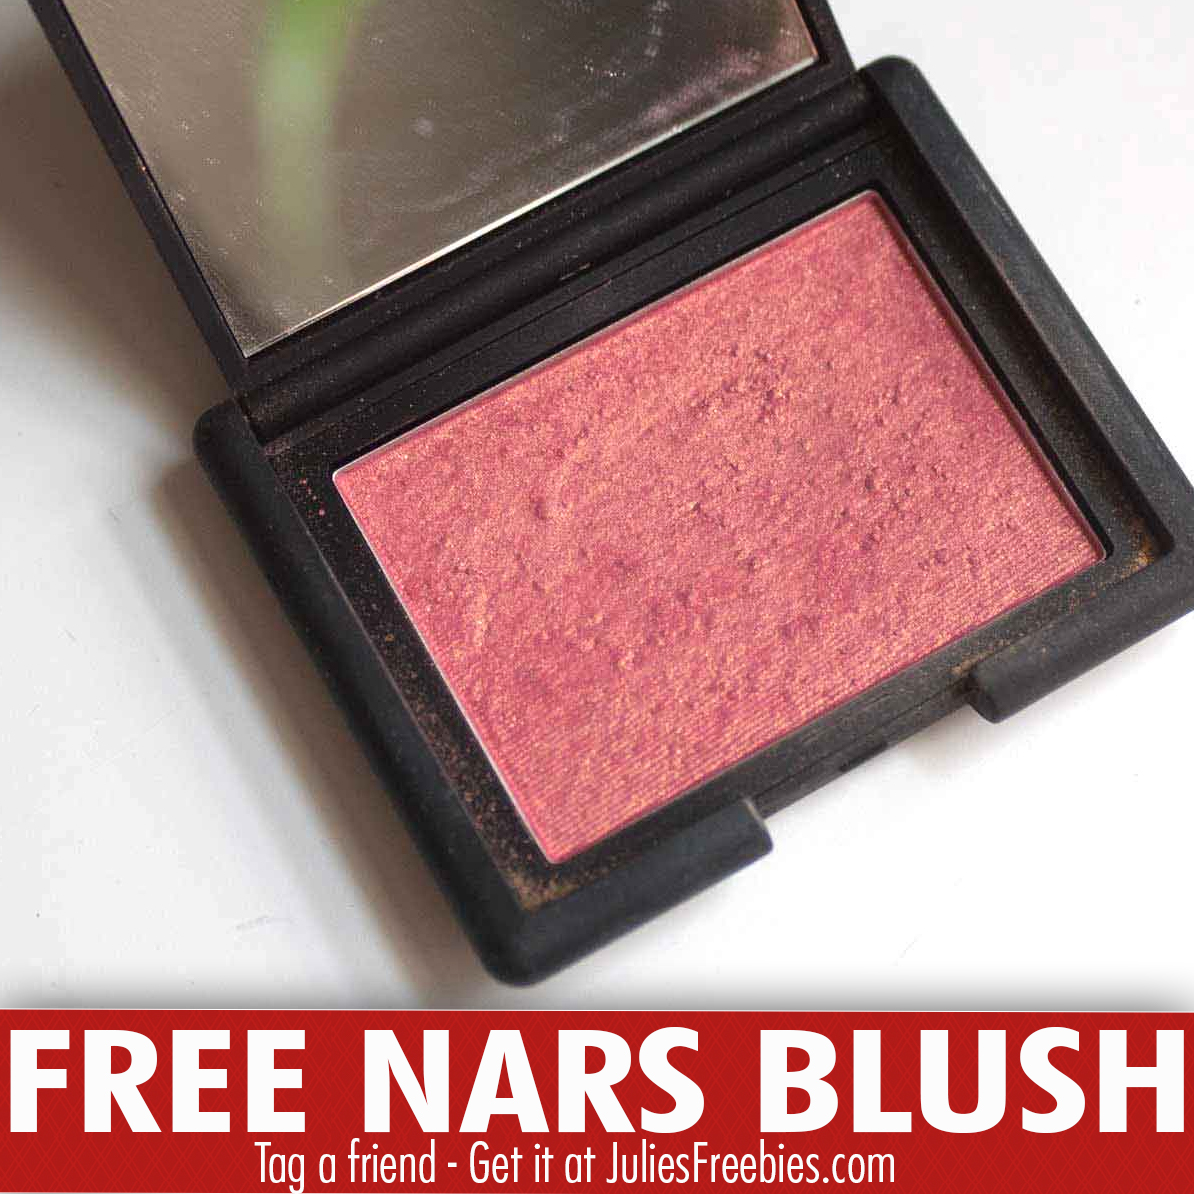 Here Is An Offer Where You Can Sign Up For The Ulta Ultamate Rewards Program And Snag A Free Nars Blush If Your Birthday In April Or